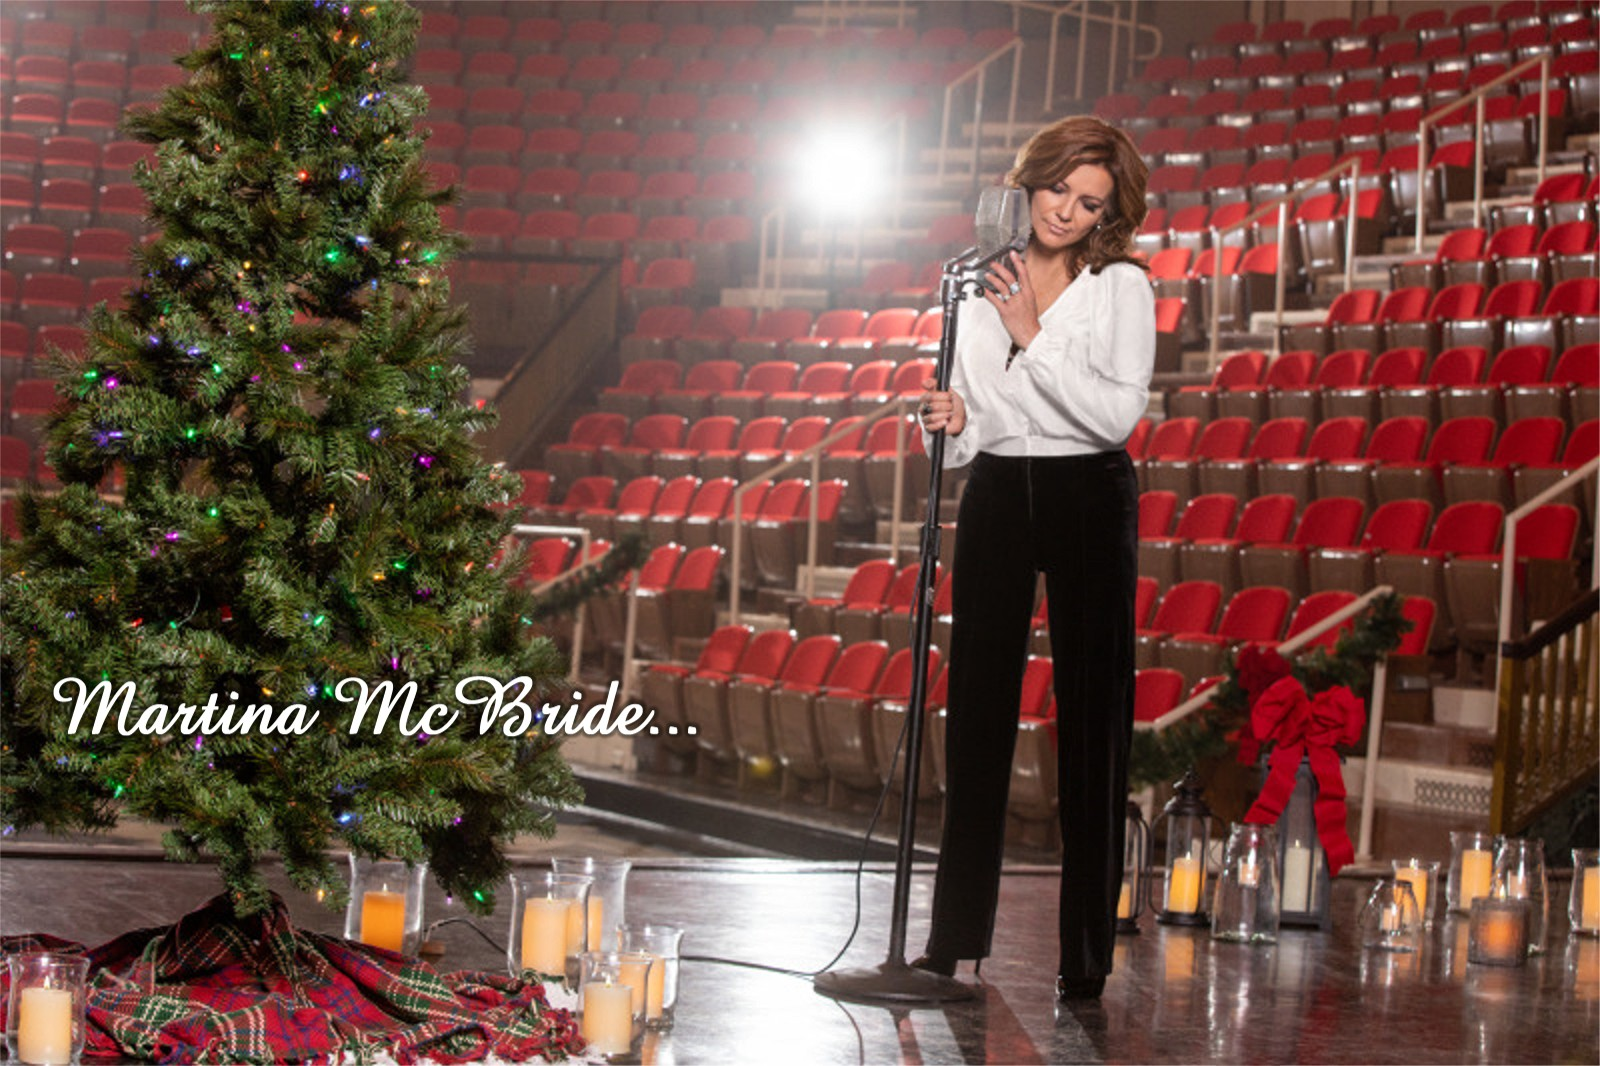 Strictly Country Magazine Martina McBride Christmas title